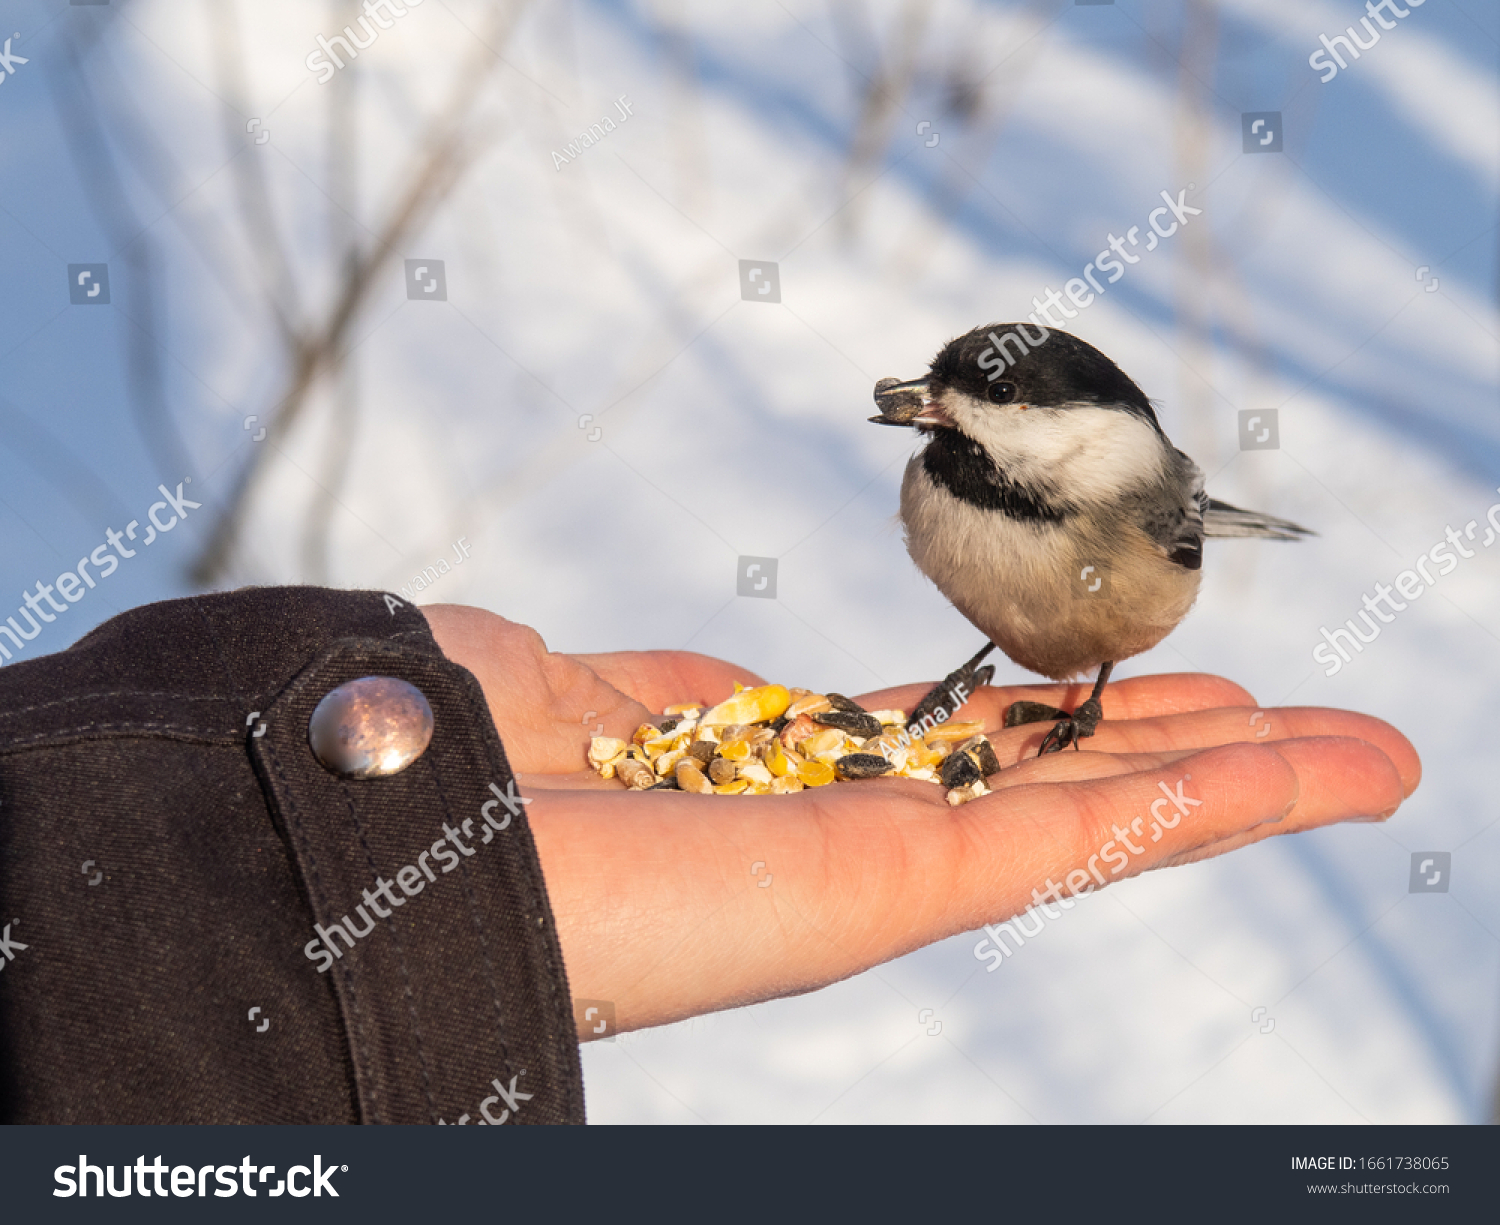 Black-capped chickadee standing on an open hand in winter at Saint Bruno National Park, Quebec, Canada